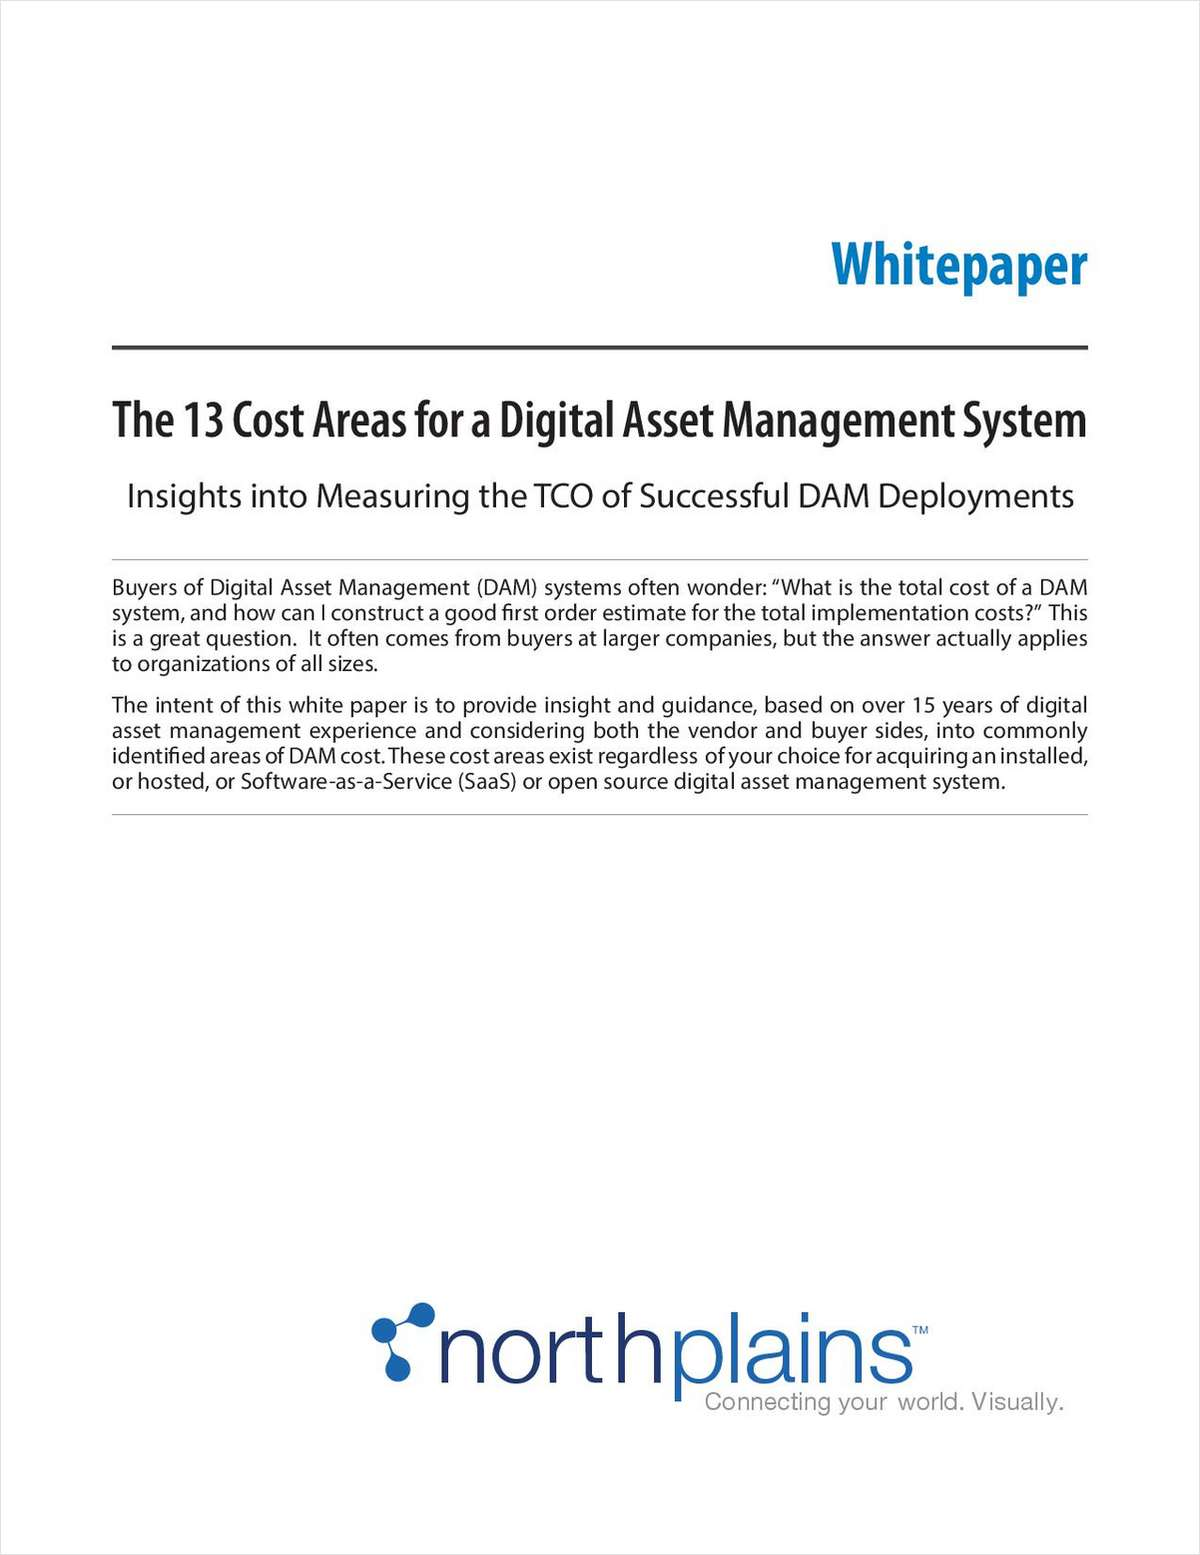 How Much Should You Be Spending for a Digital Asset Management System?